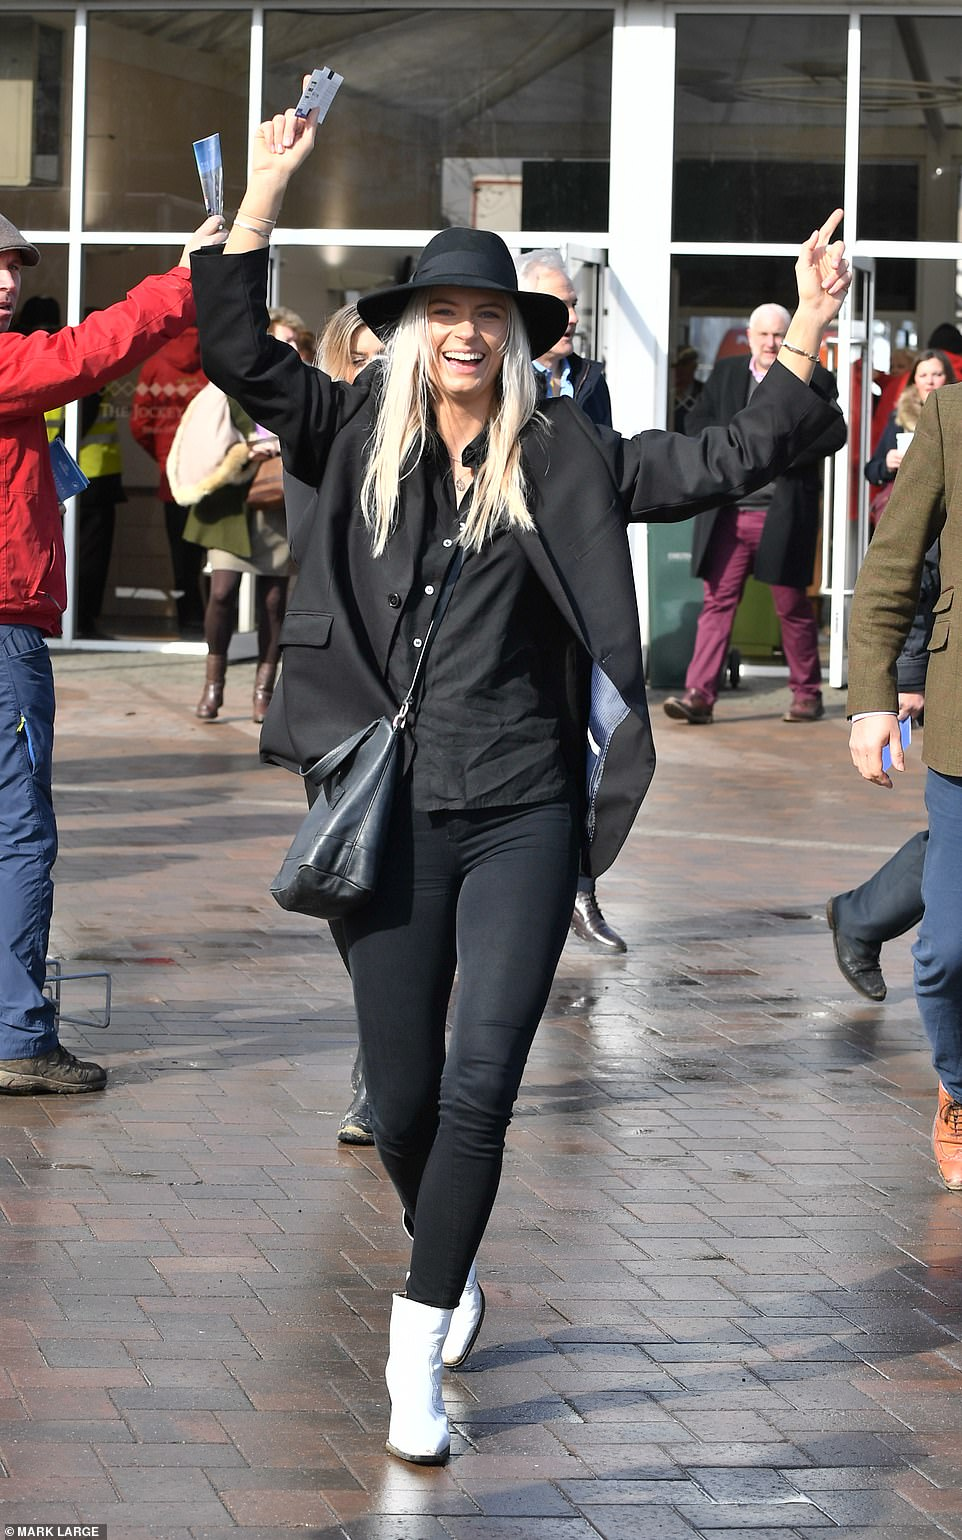 Backed a winner? Dressed casually in black jeans, one racegoer was spotted celebrating at the racing action got underway